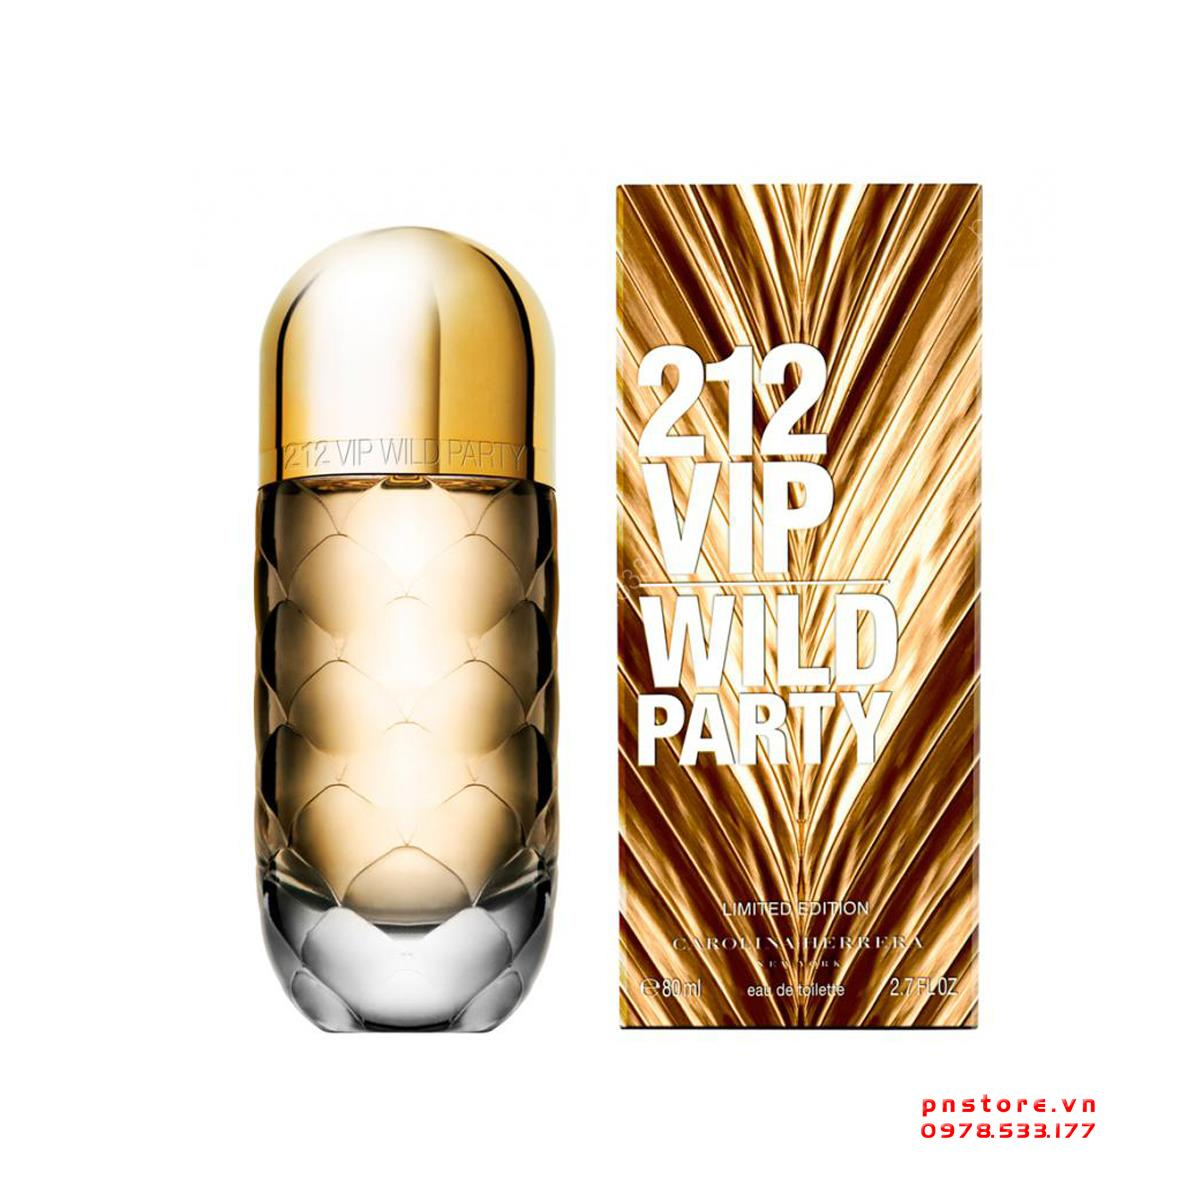 nuoc-hoa-nu-212-vip-wild-party-edt-80ml-limited-edition-chinh-hang-my-pn102031